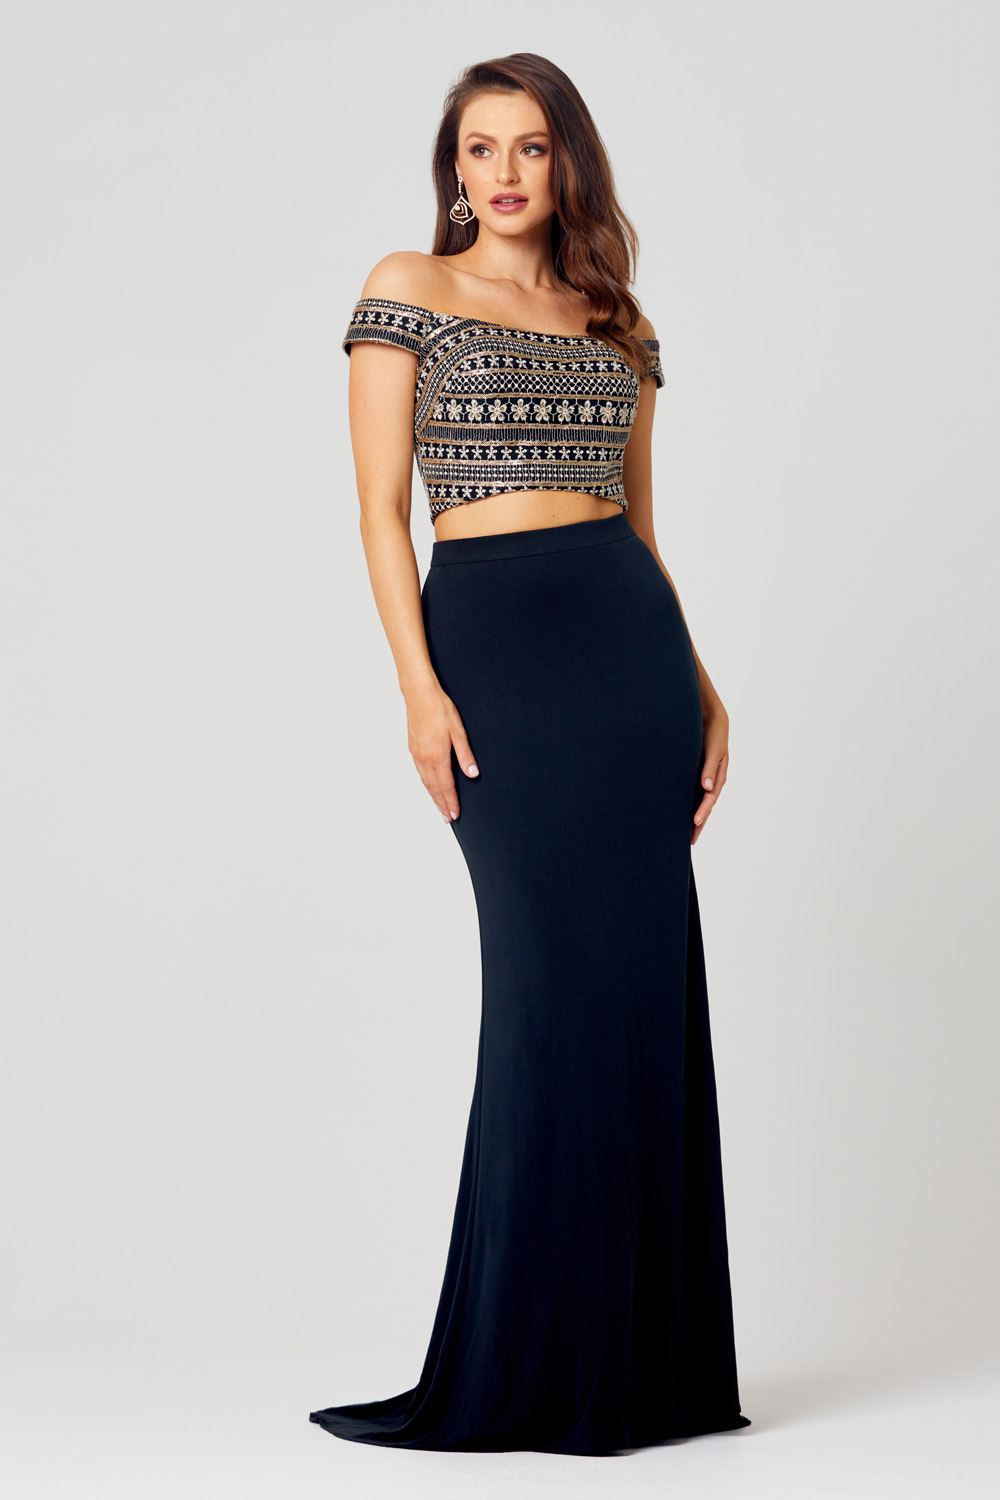 Ana Two Piece Formal Dress PO810